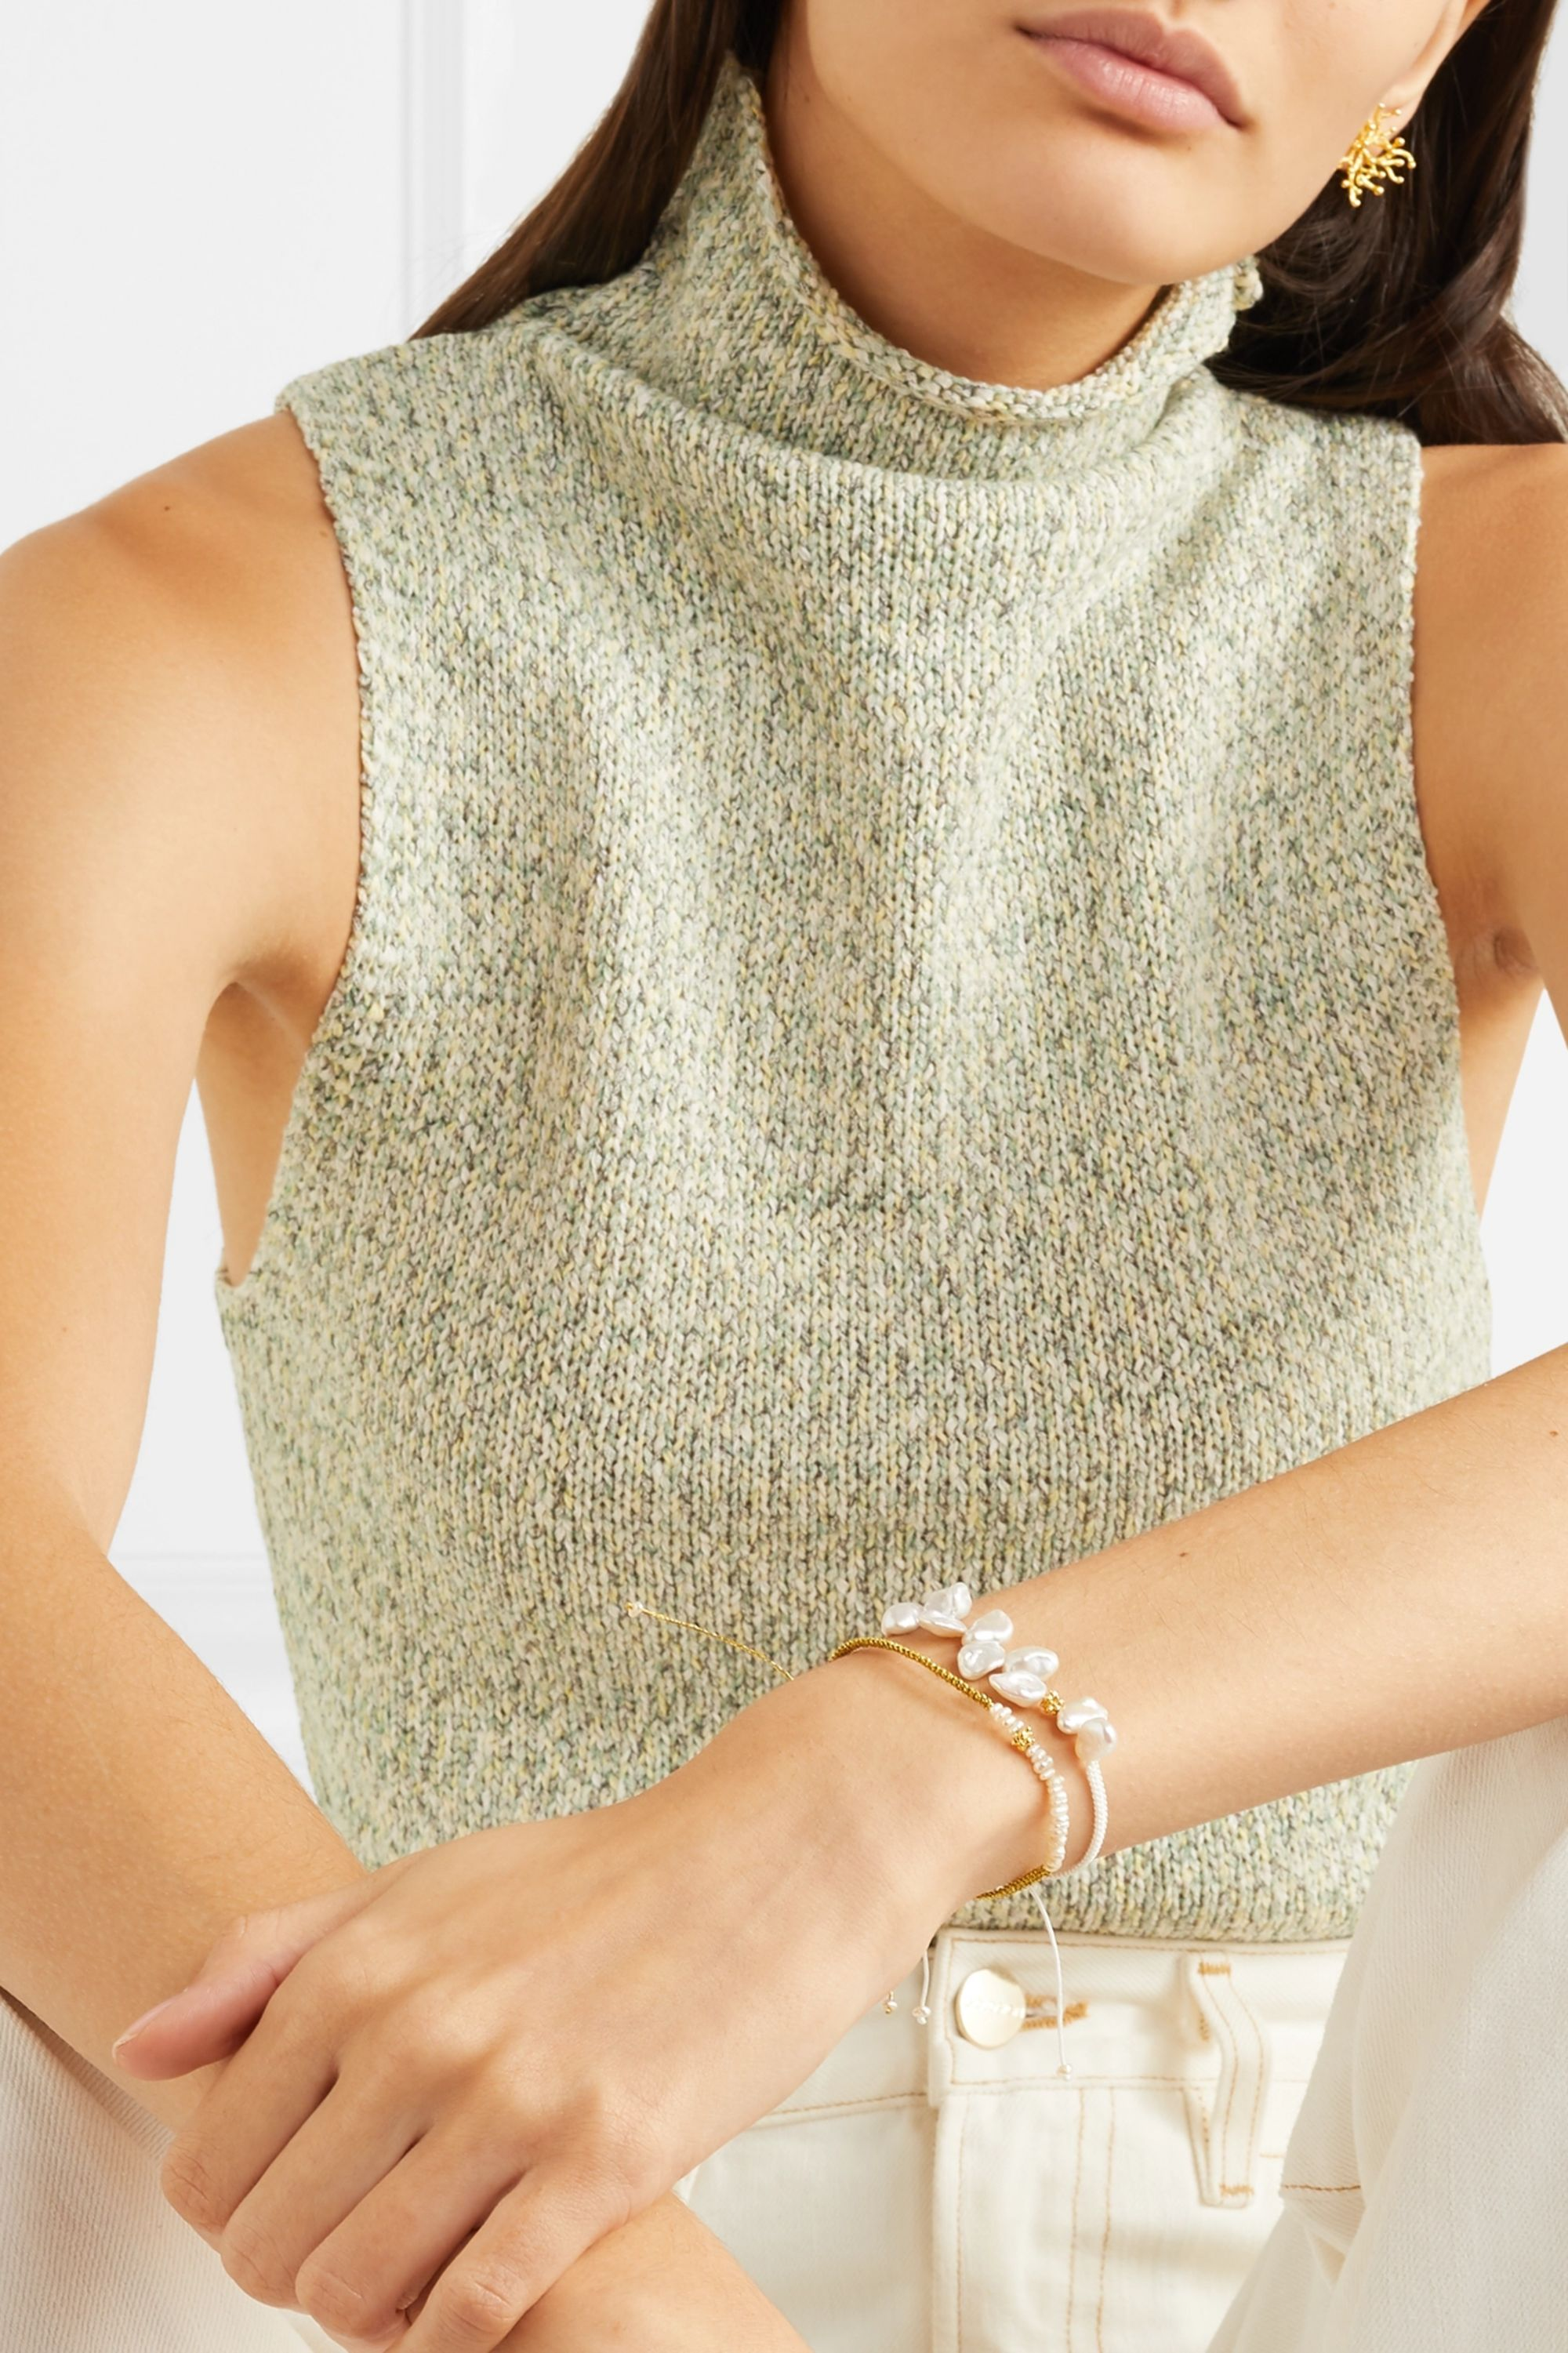 Pacharee + Pach Tach pearl, rope and gold-plated bracelet